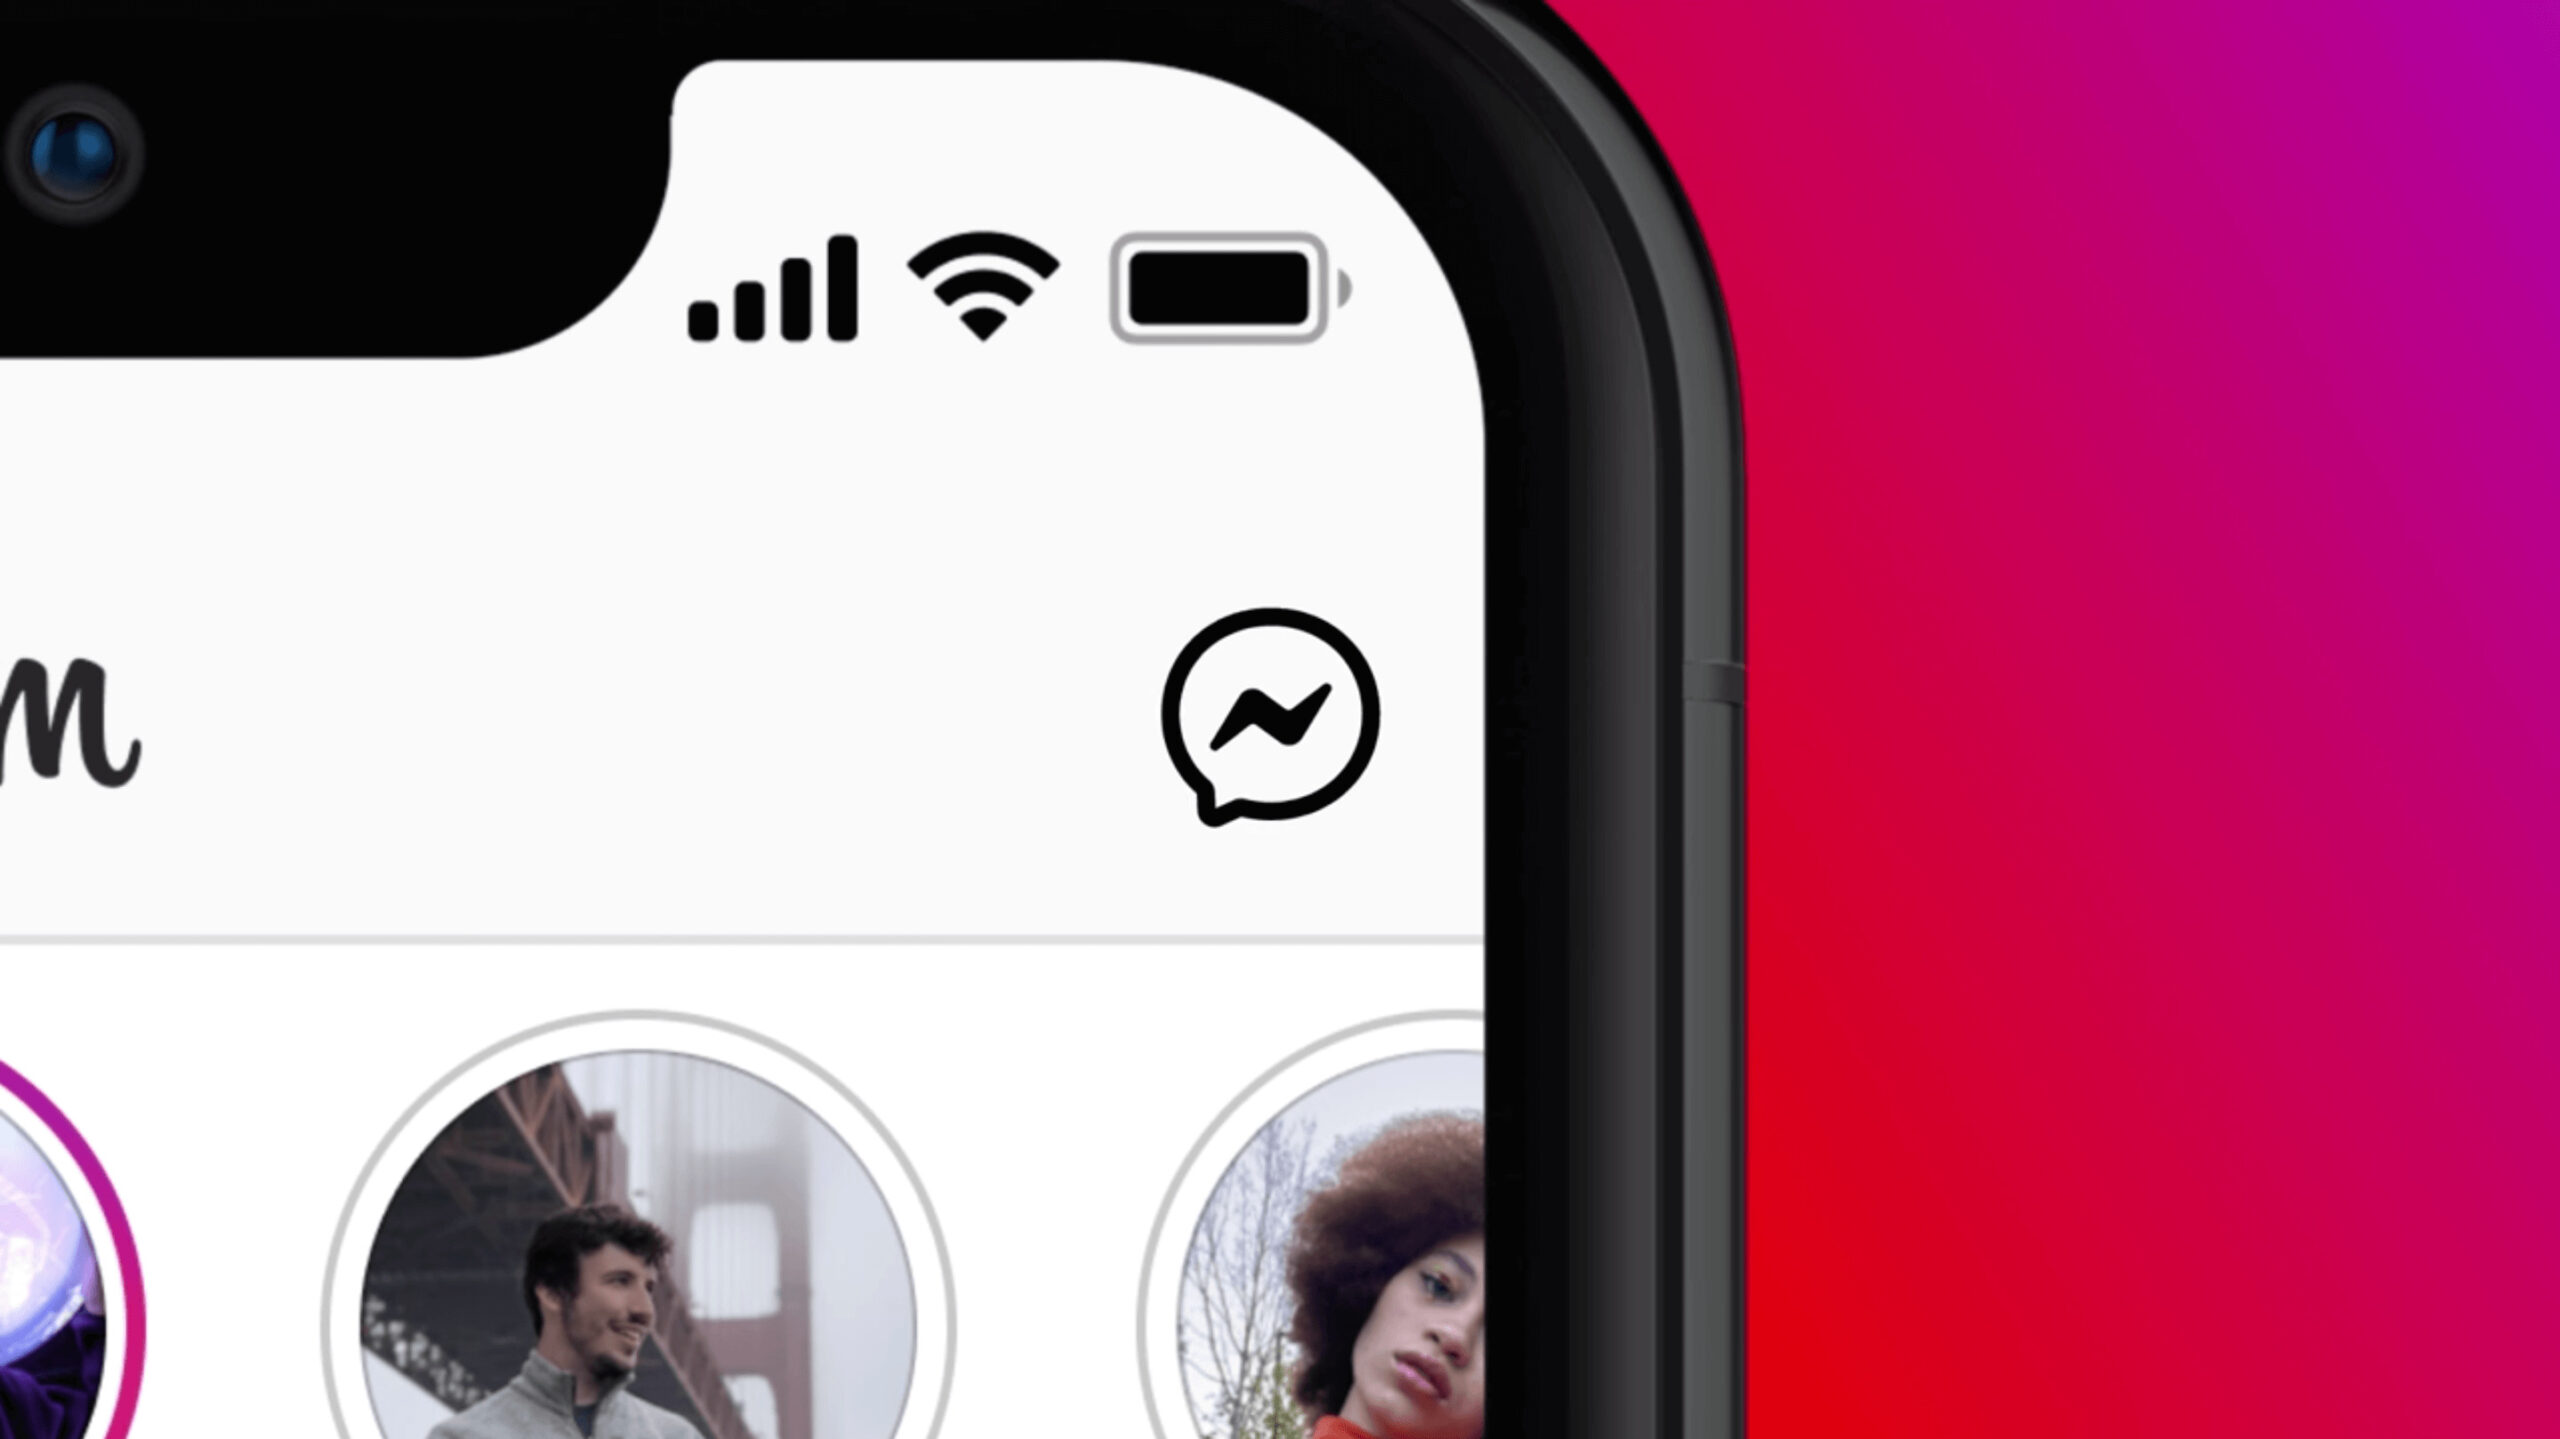 See that Messenger icon at the Instagram box chat?